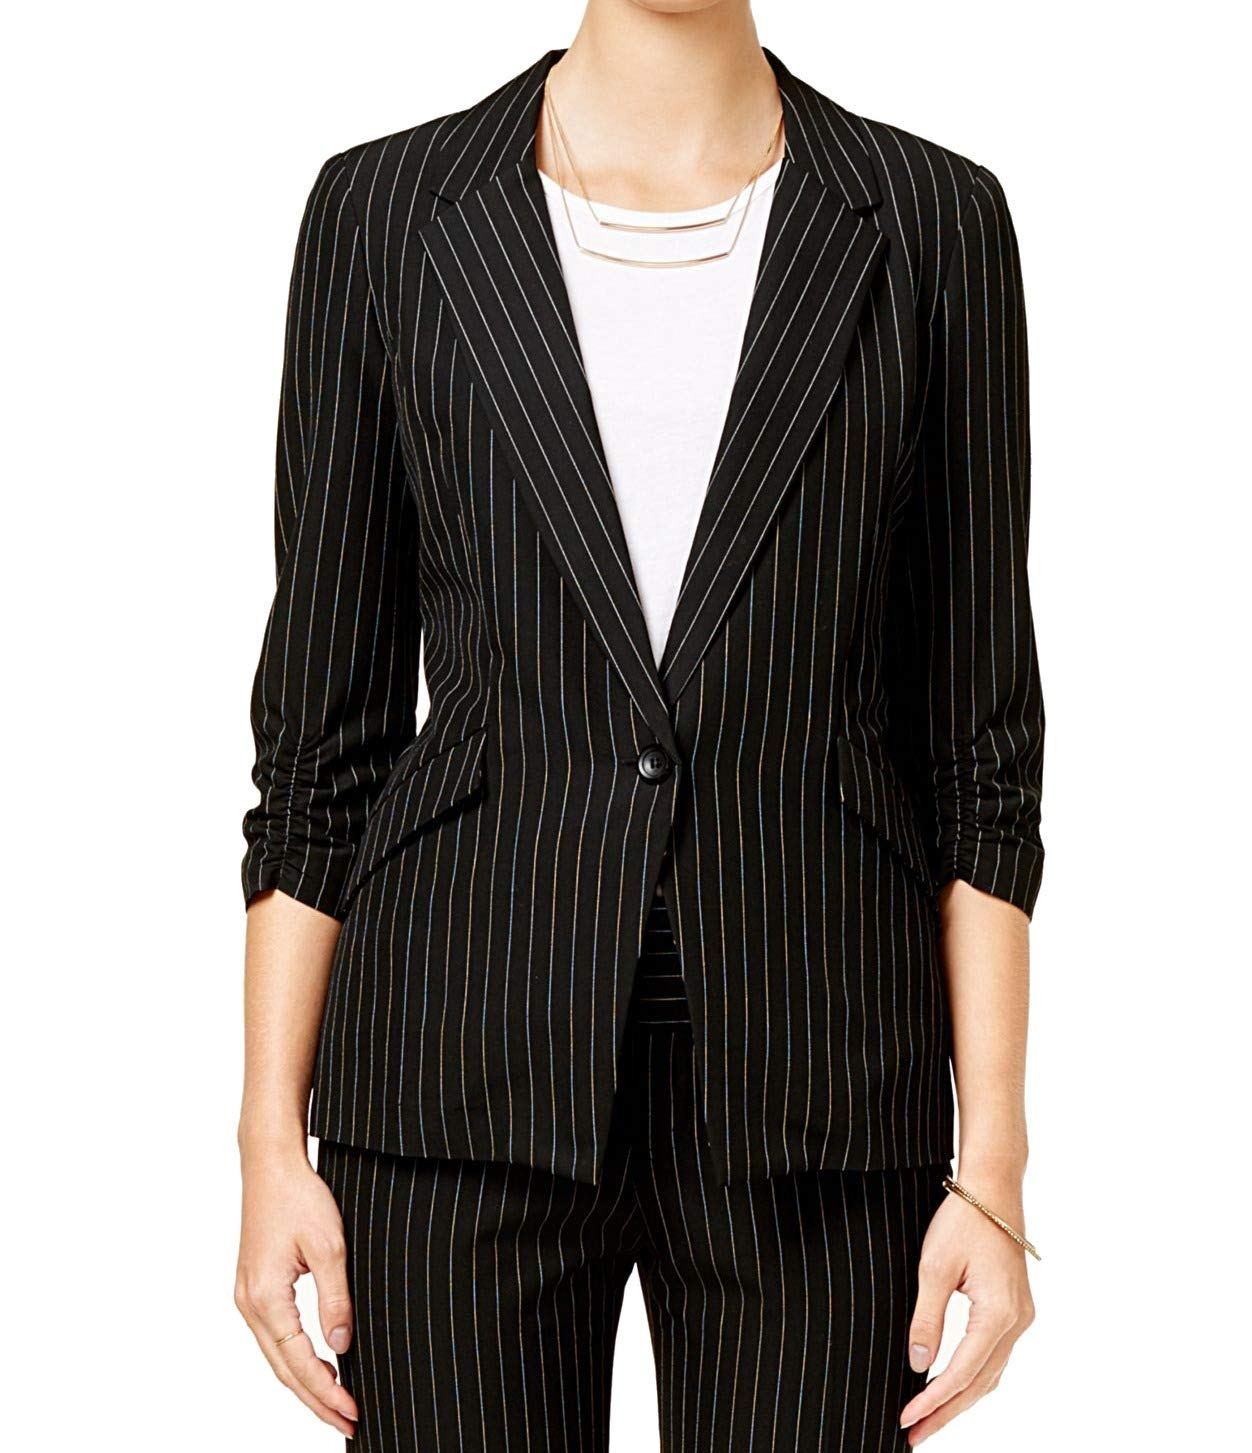 BCX Women's One-Button Pinstripe Ruch Sleeve Blazer